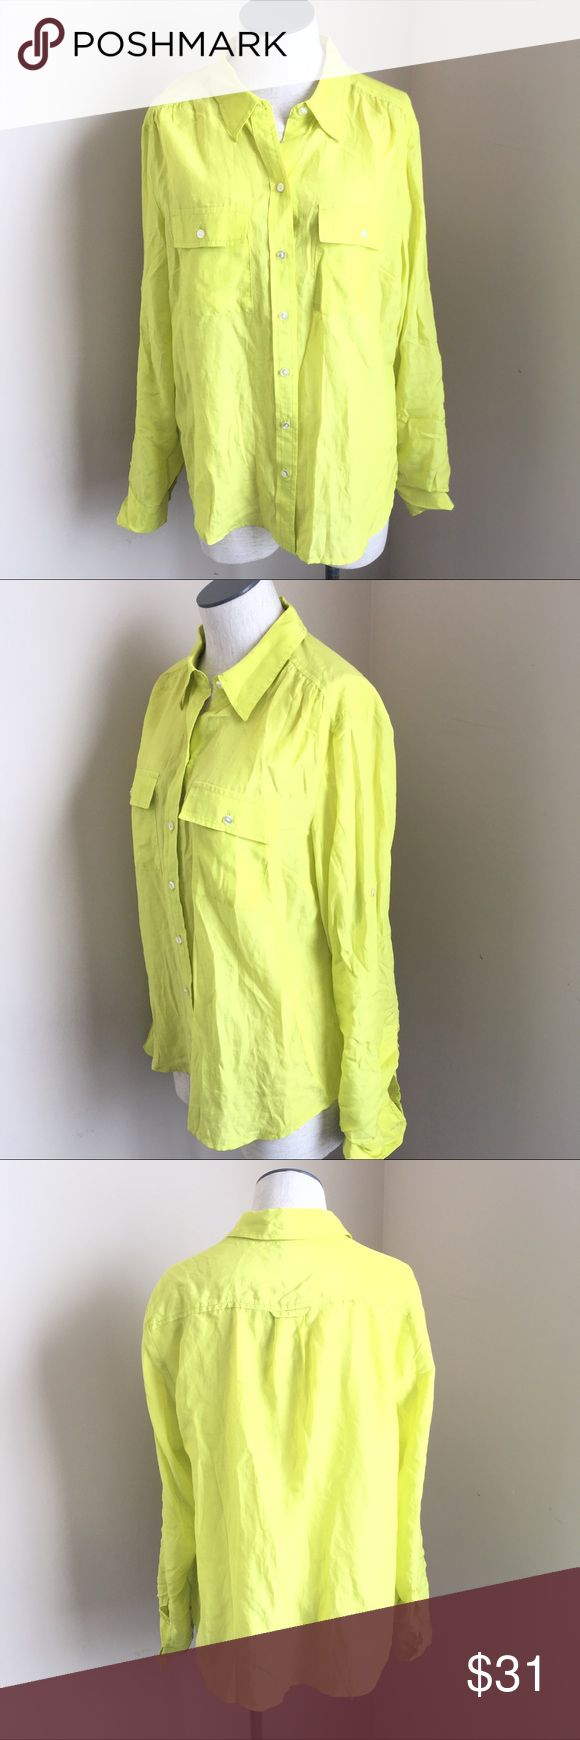 ANN TAYLOR BUTTON Down SHIRT Lime Green Silk Button down Ann Taylor shirt. The color is a neon lime green/yellow. 52%  Silk 48% Cotton. Long sleeve with roll up option. Excellent condition. Perfect for Spring. Ann Taylor Tops Button Down Shirts